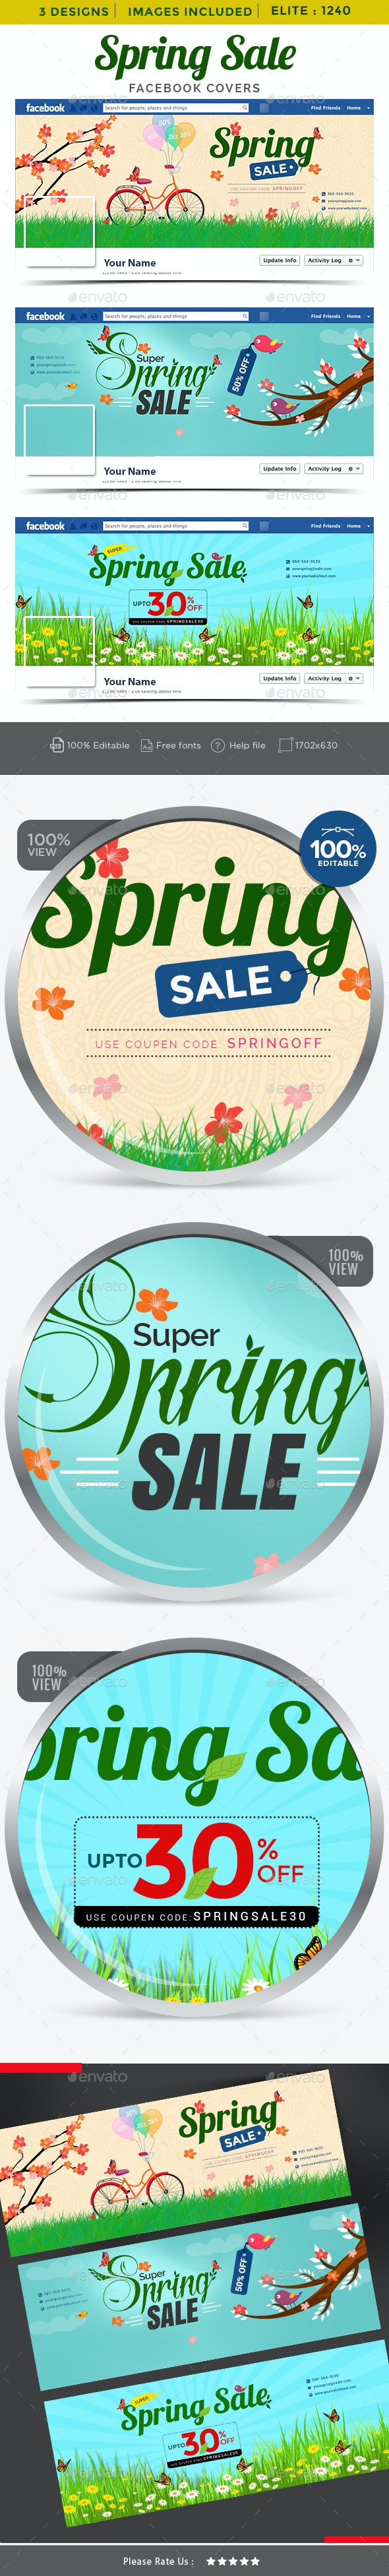 Spring Sale Facebook Covers - 3 Designs - Images Included - Facebook Timeline Covers Social Media